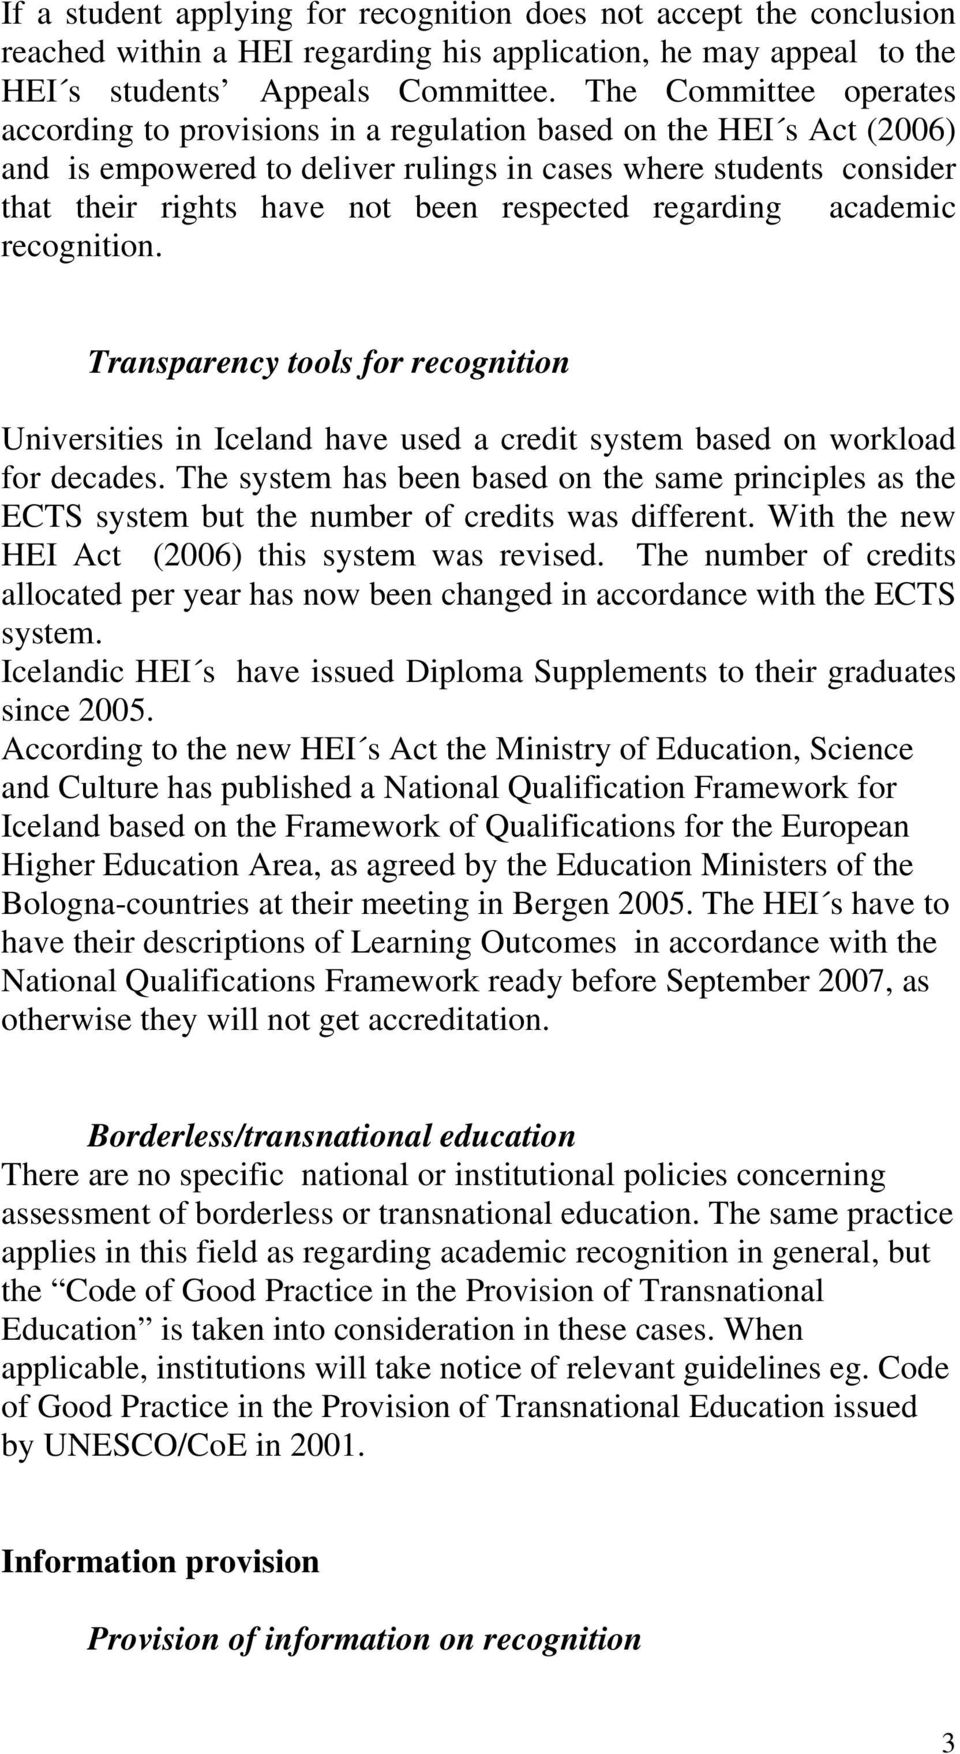 respected regarding academic recognition. Transparency tools for recognition Universities in Iceland have used a credit system based on workload for decades.